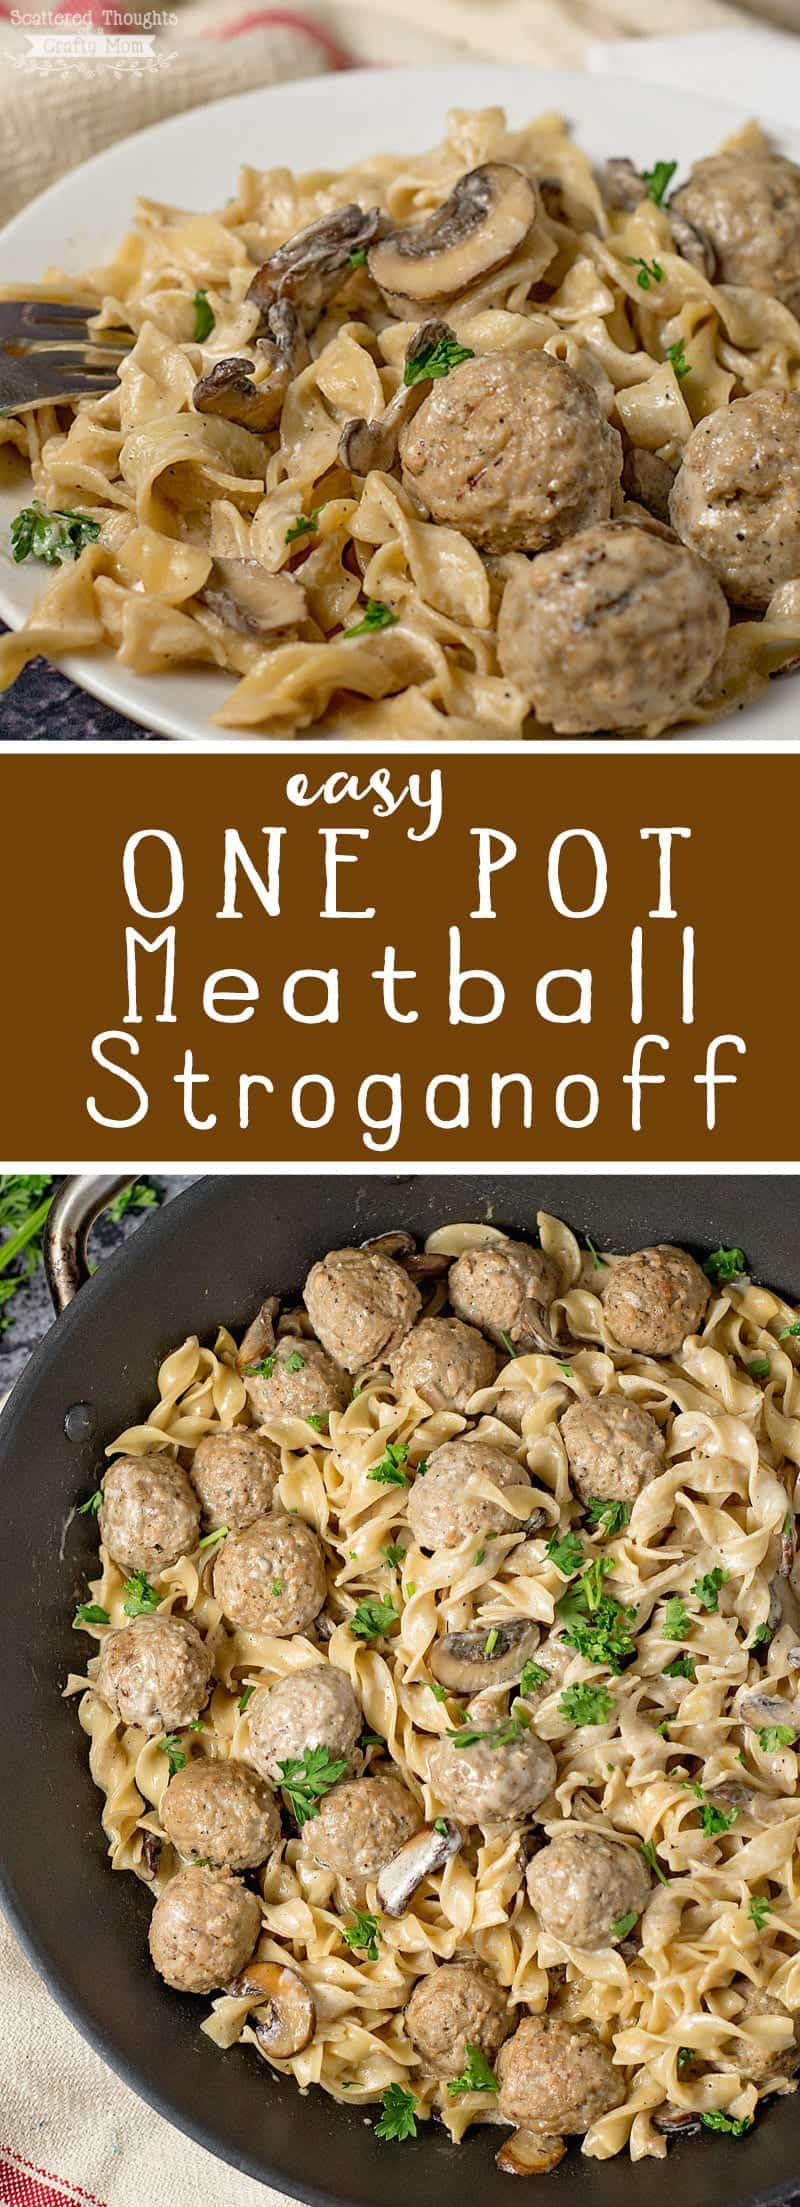 Easy One Pot Meatball Stroganoff (20 Minute Meal)   #20minutemeal #meatballstroganoff #meatballs #oneppotpasta #eggnoodles